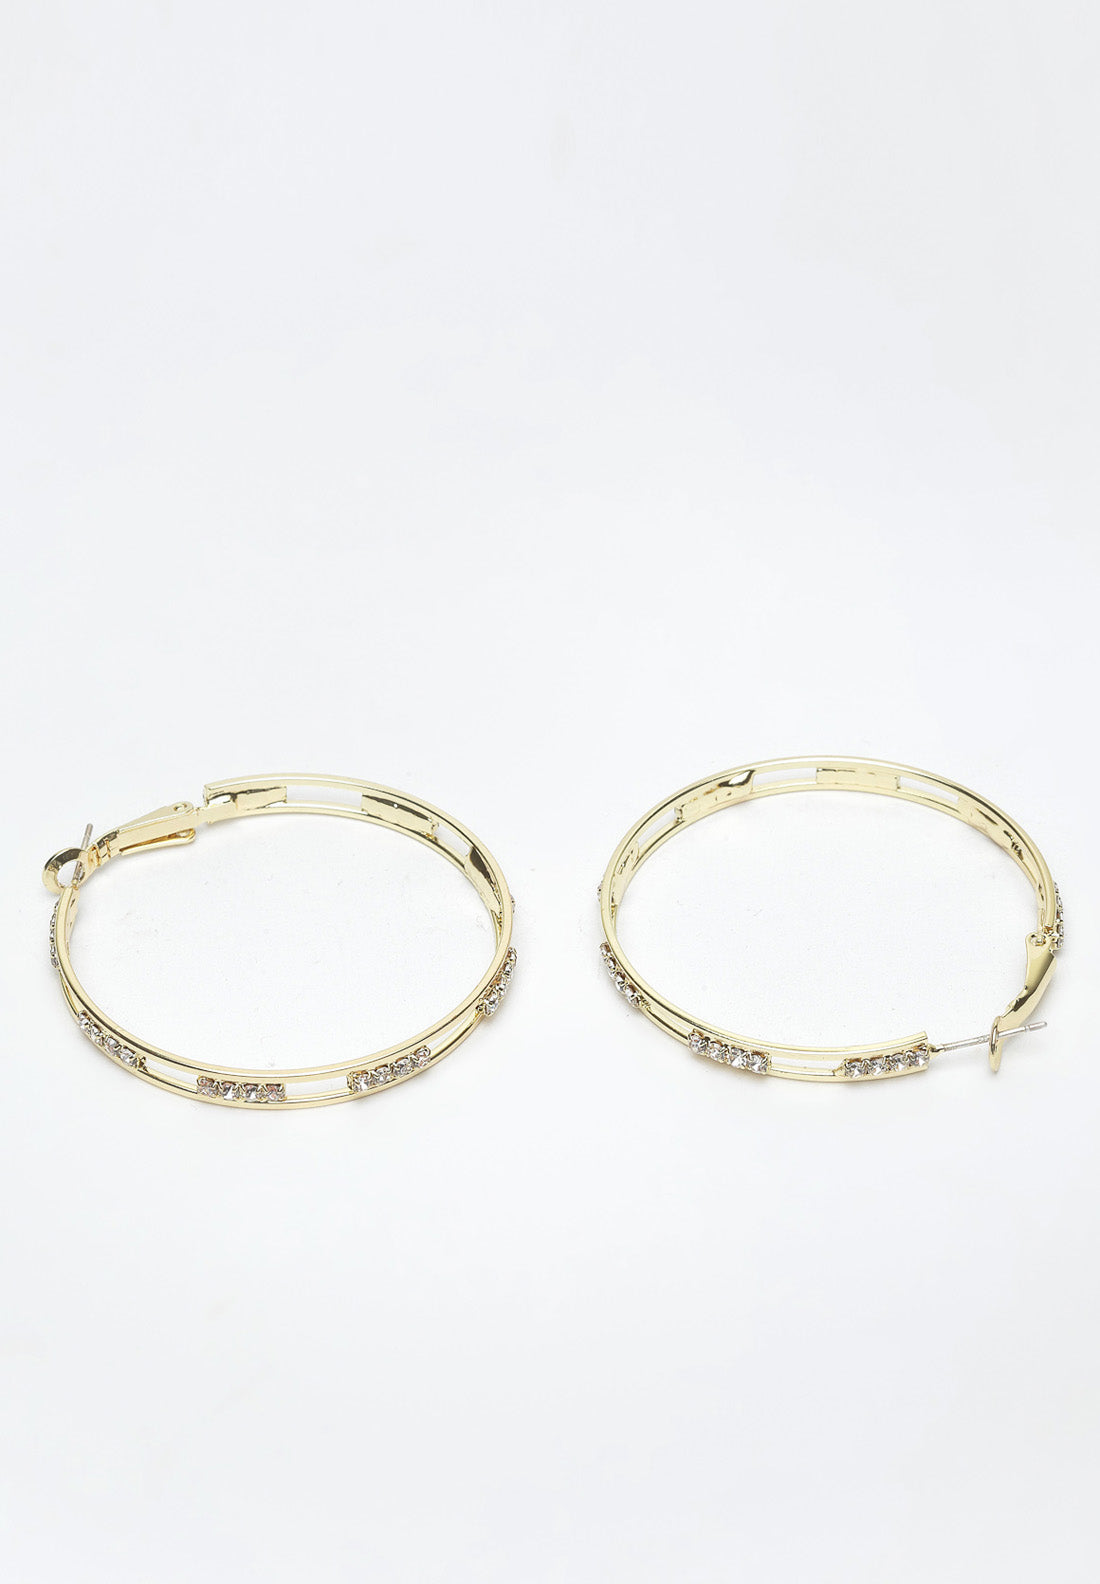 Avant-Garde Paris Gold Hoop Earrings